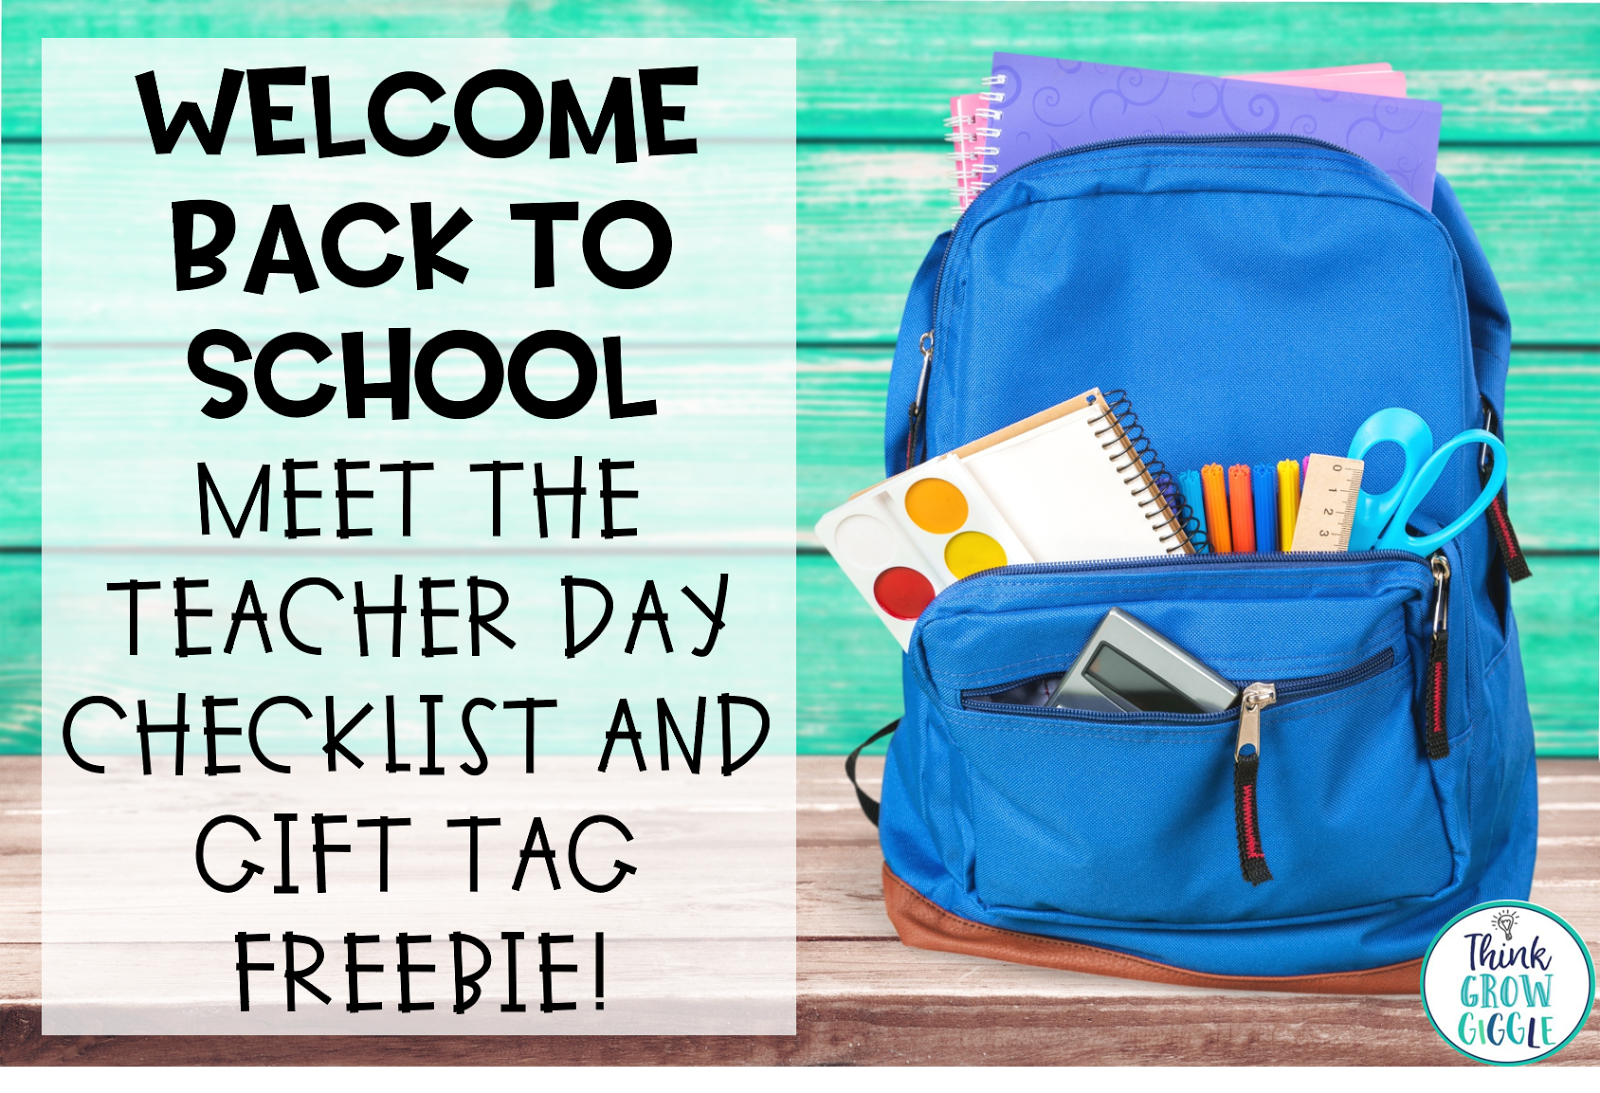 back to school, freebie, welcome, meet the teacher, back to school checklist